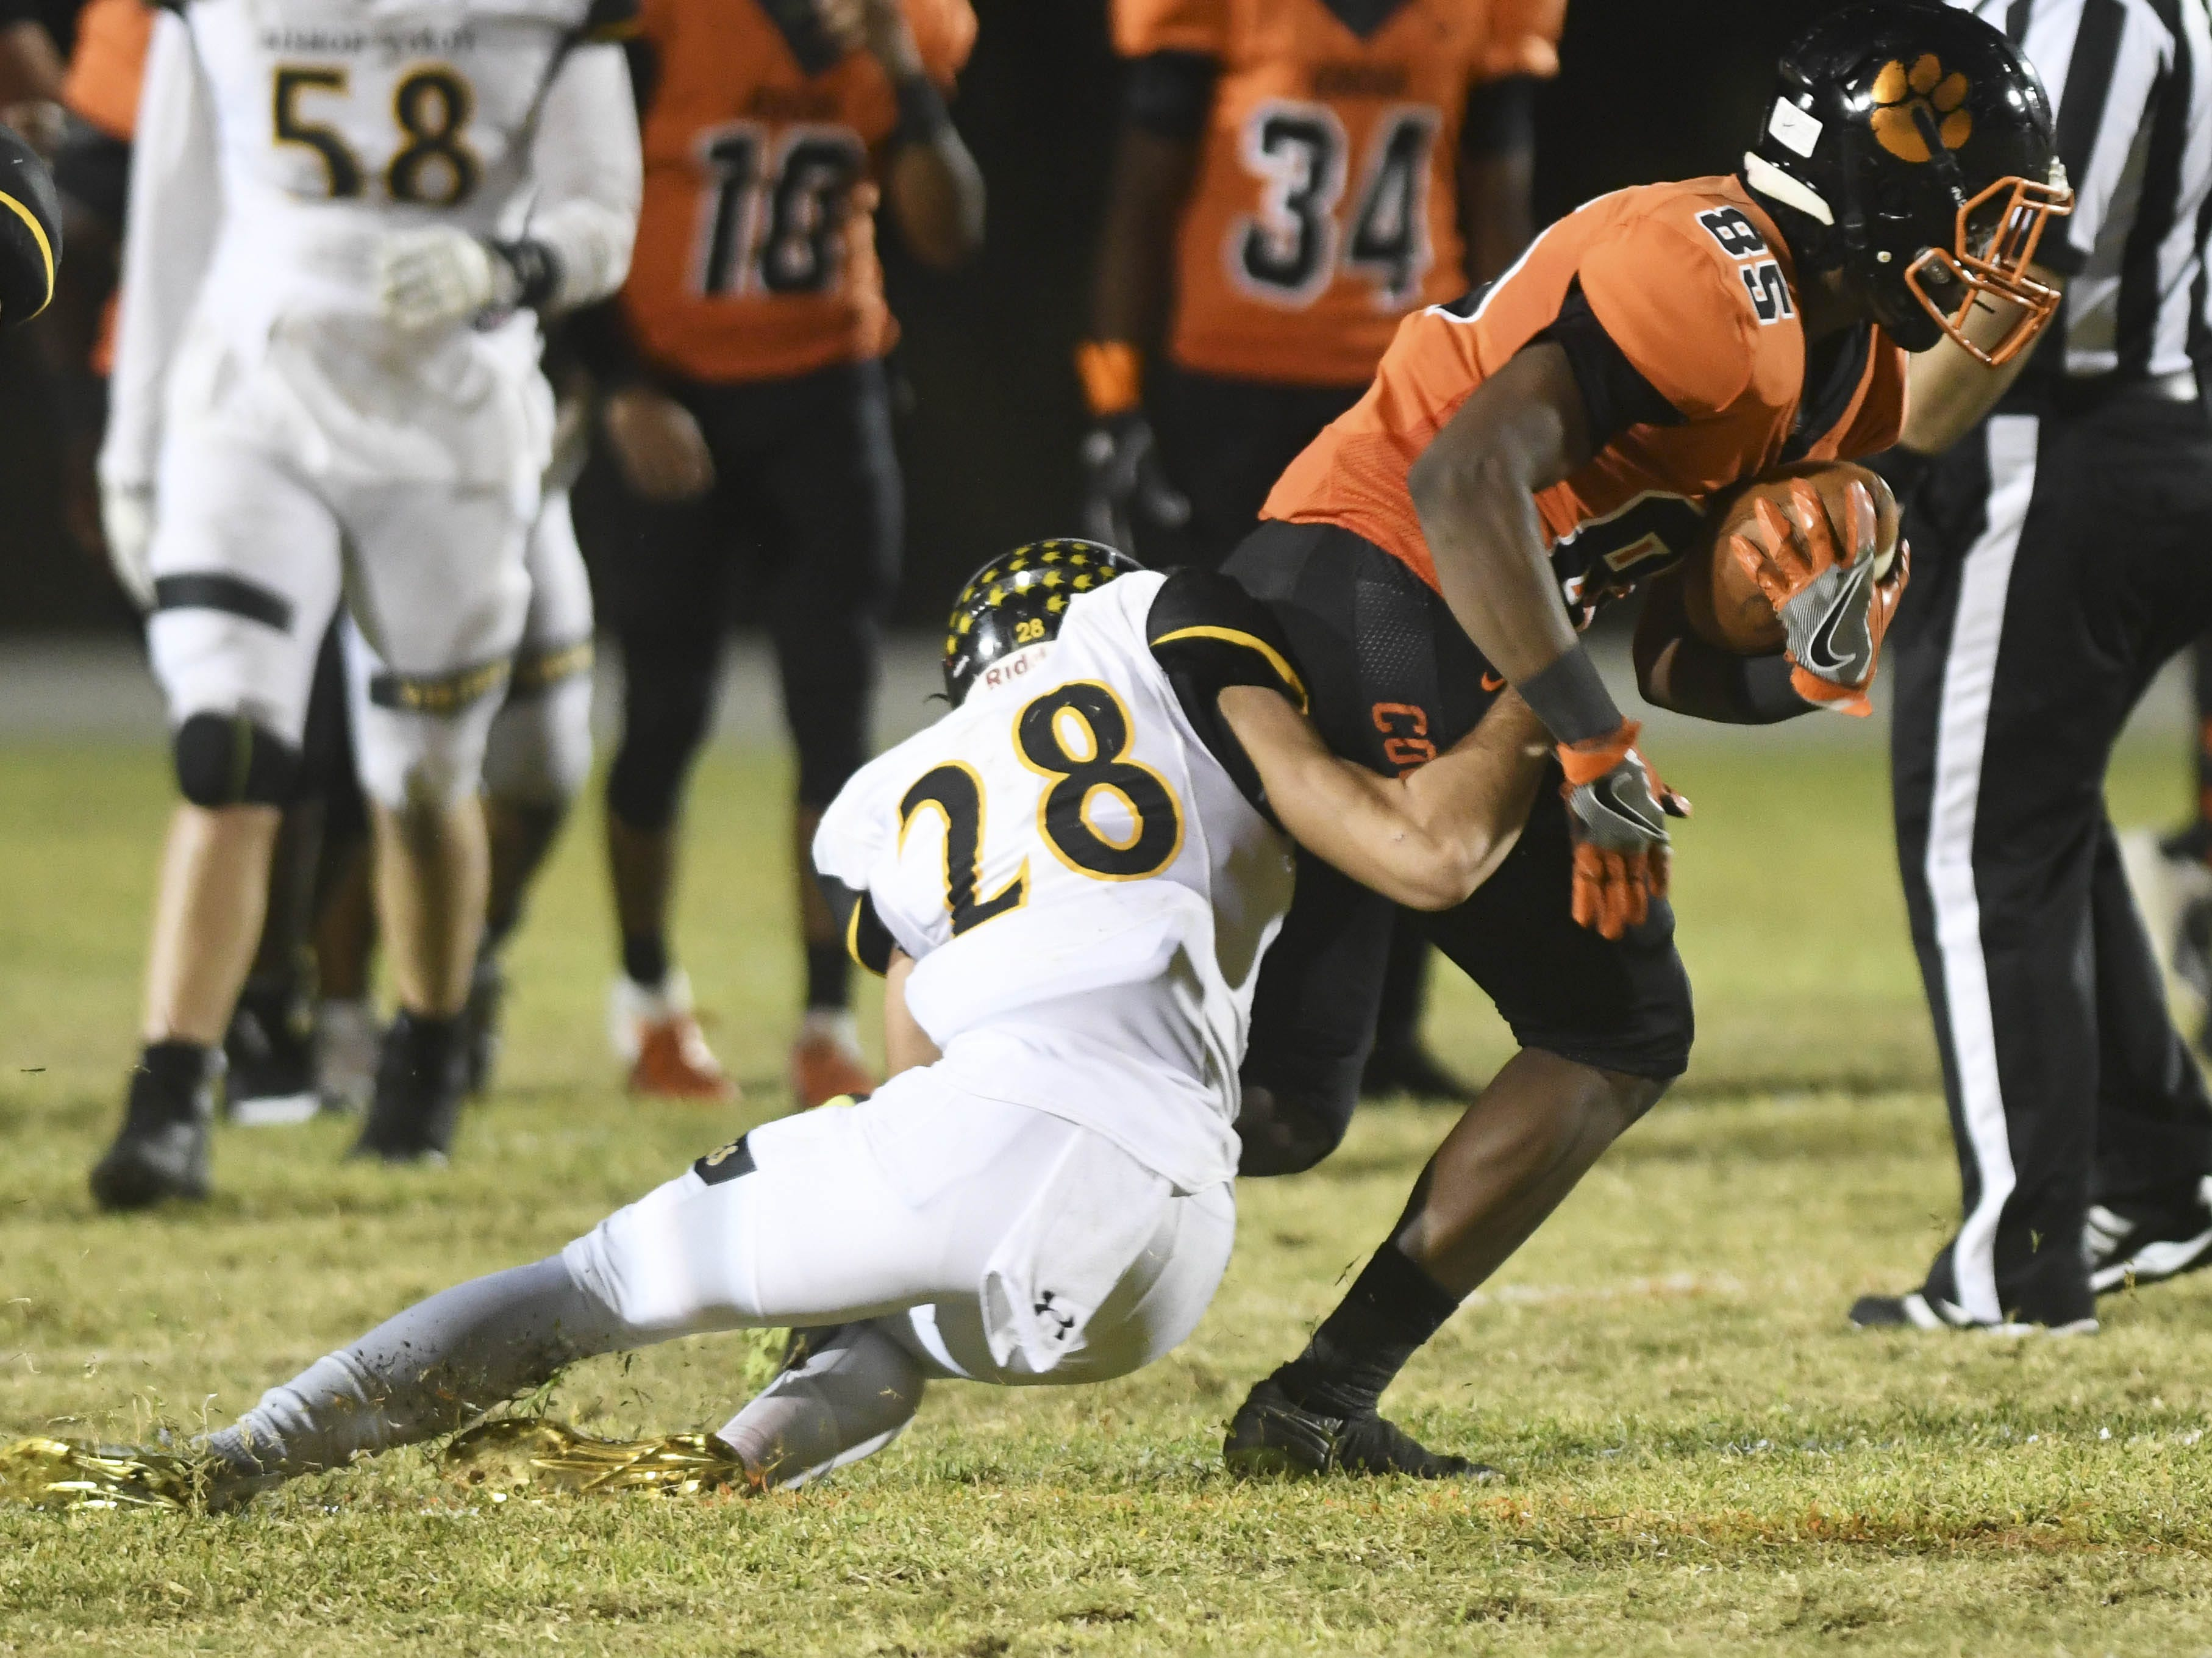 Demarquez Henley of Cocoa is dragged down by Derrick Erickson of Bishop Verot after making a first down catch during Friday's game.